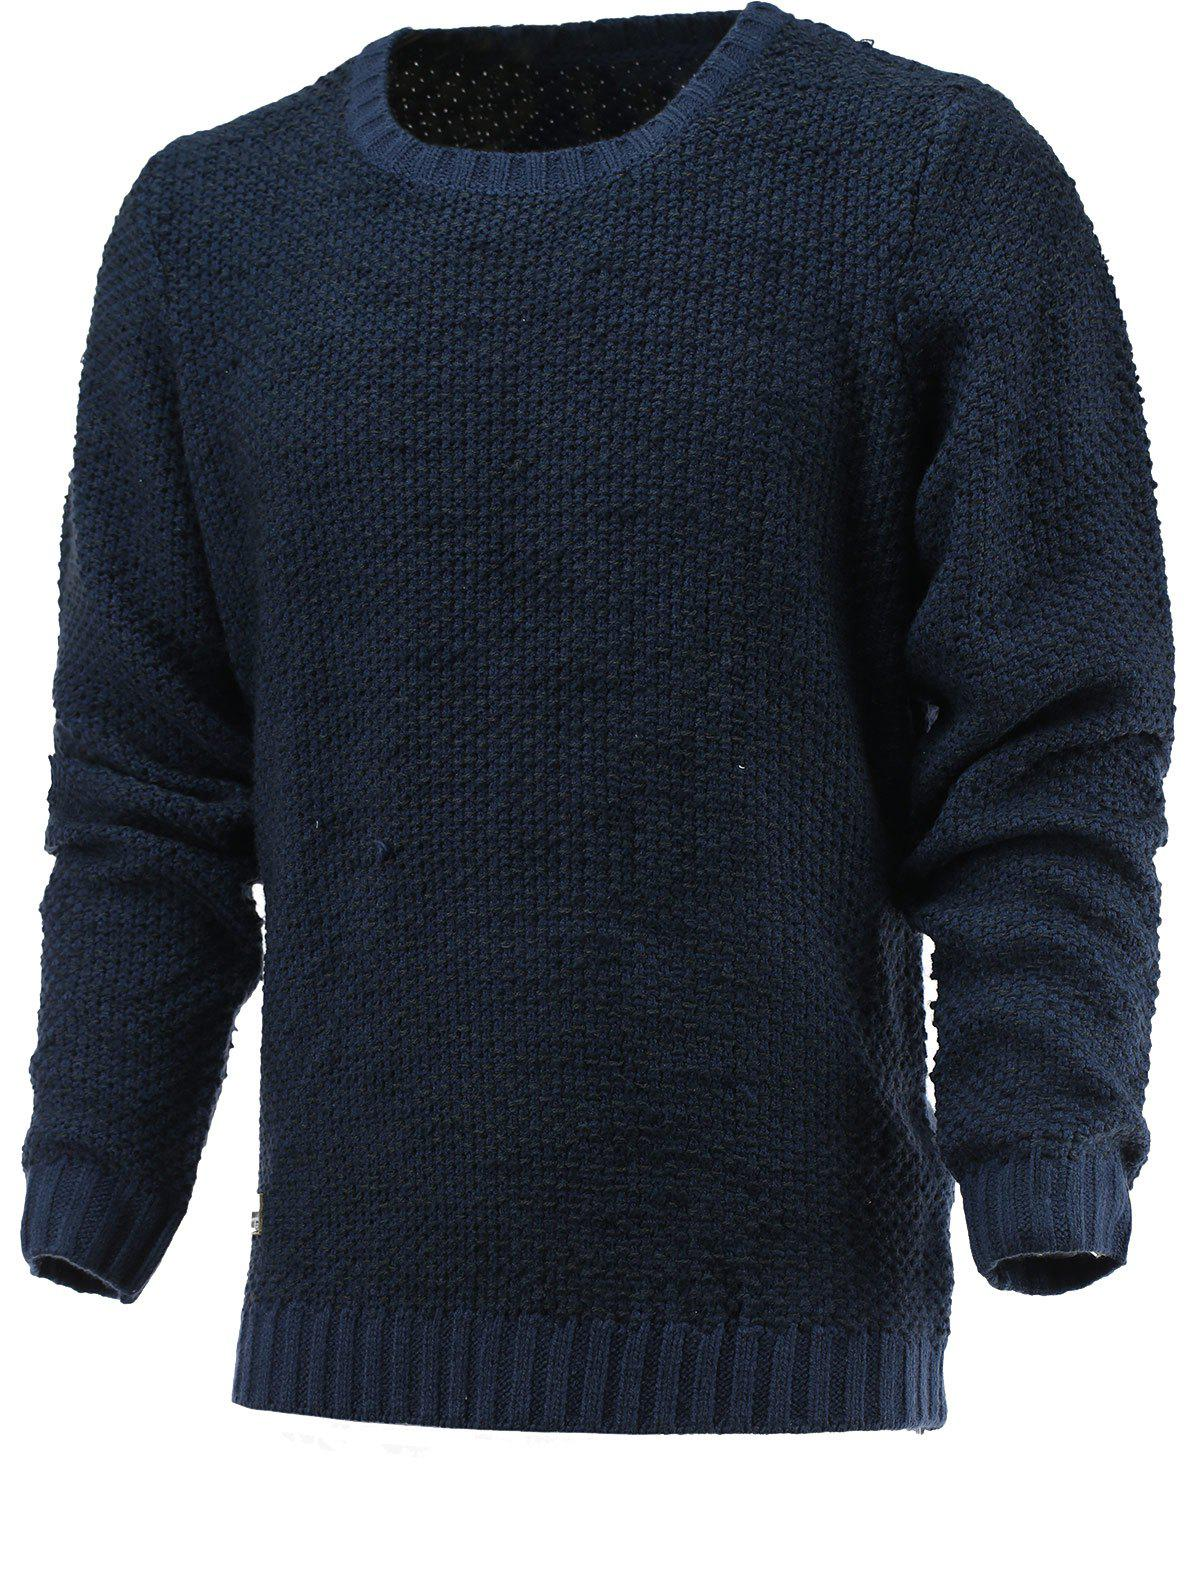 Brief Round Neck Long Sleeve Sweater - DEEP BLUE XL